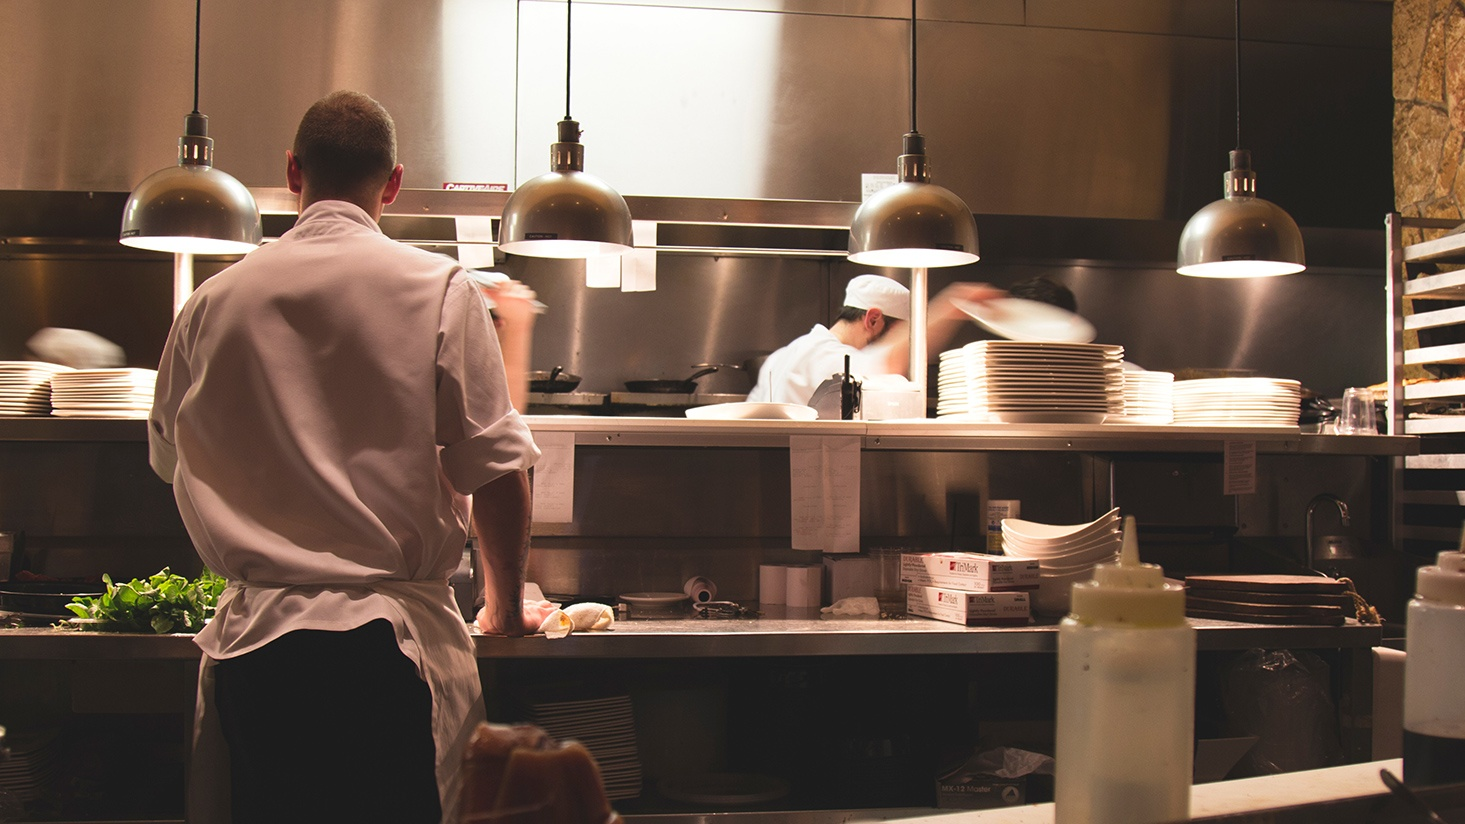 Here's a recipe for restaurant lighting design success